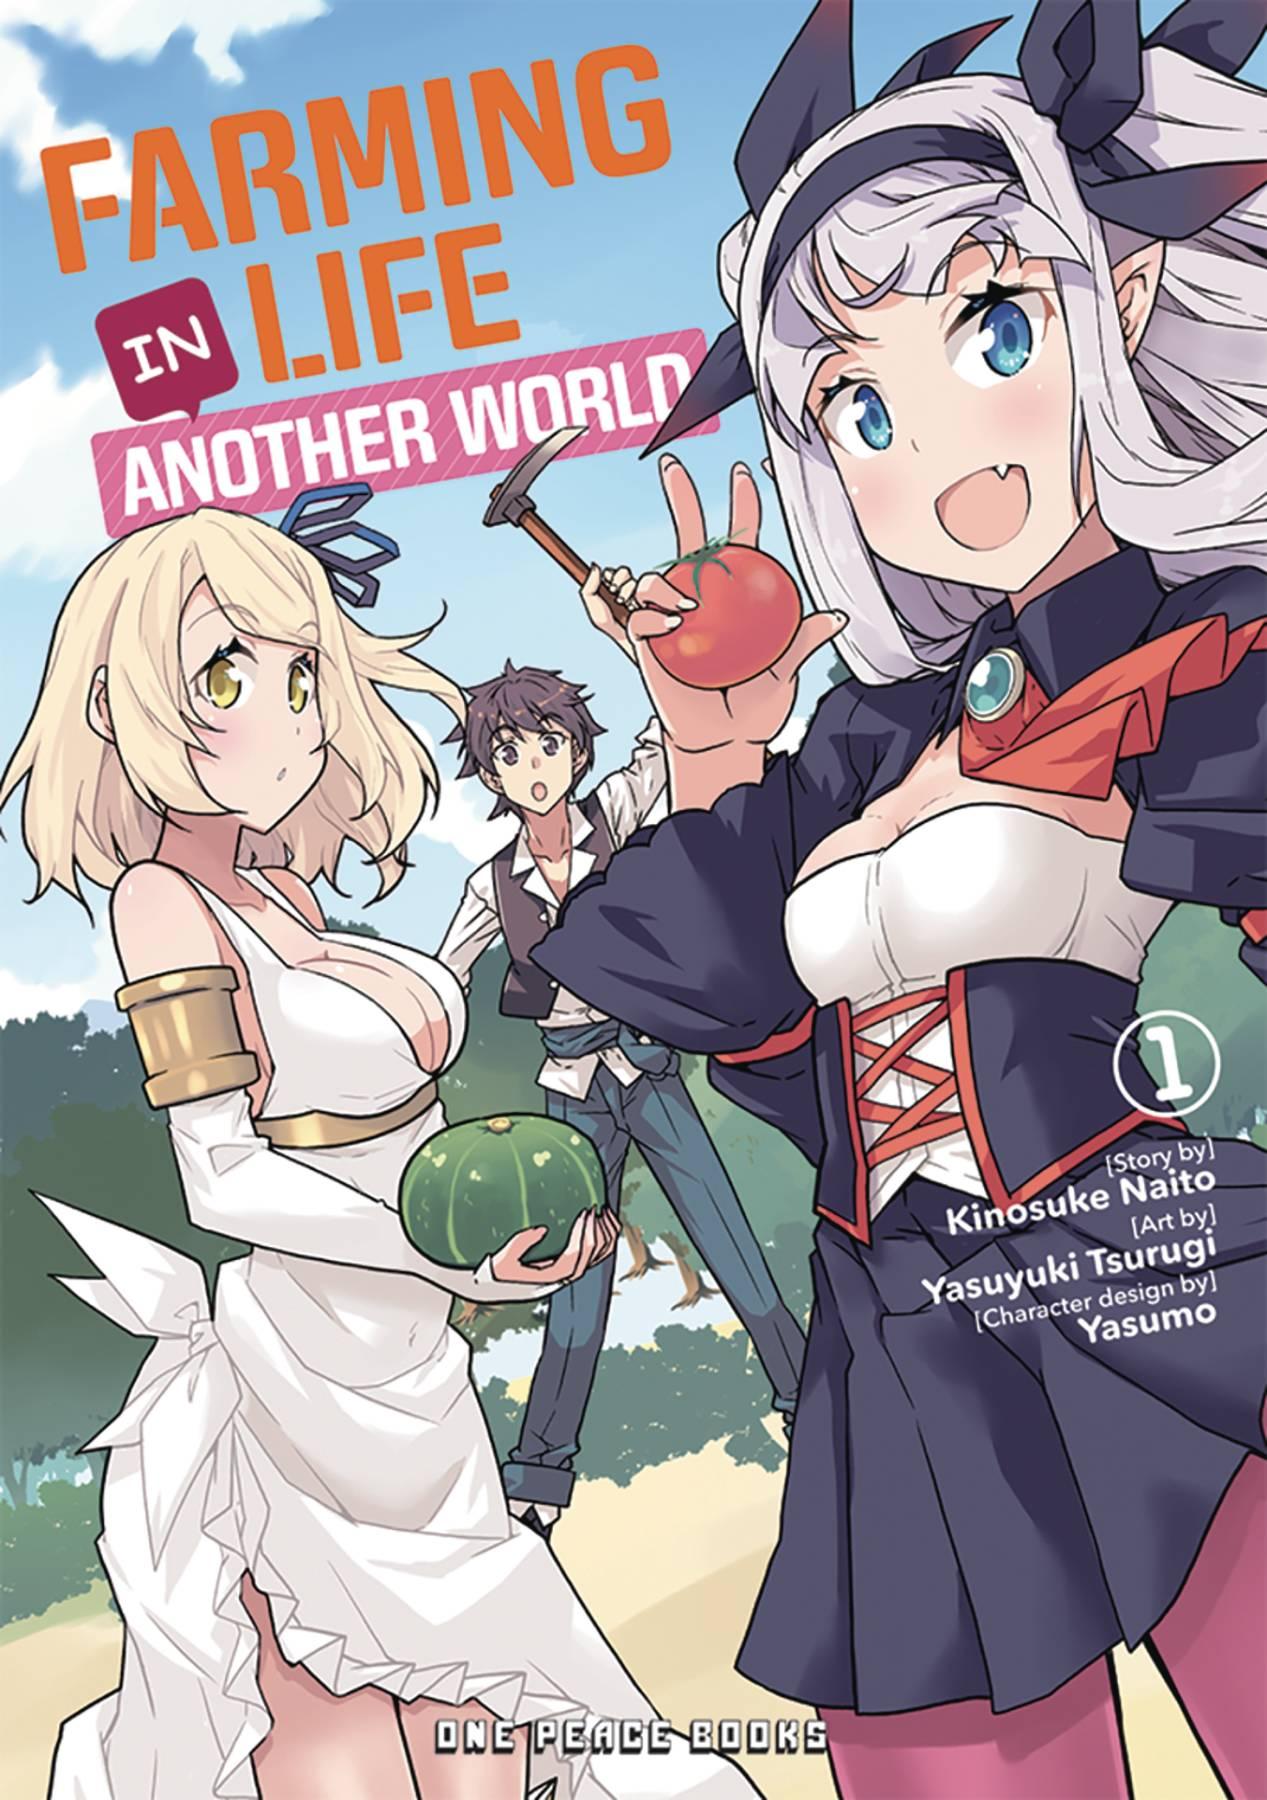 FARMING LIFE IN ANOTHER WORLD GN 01